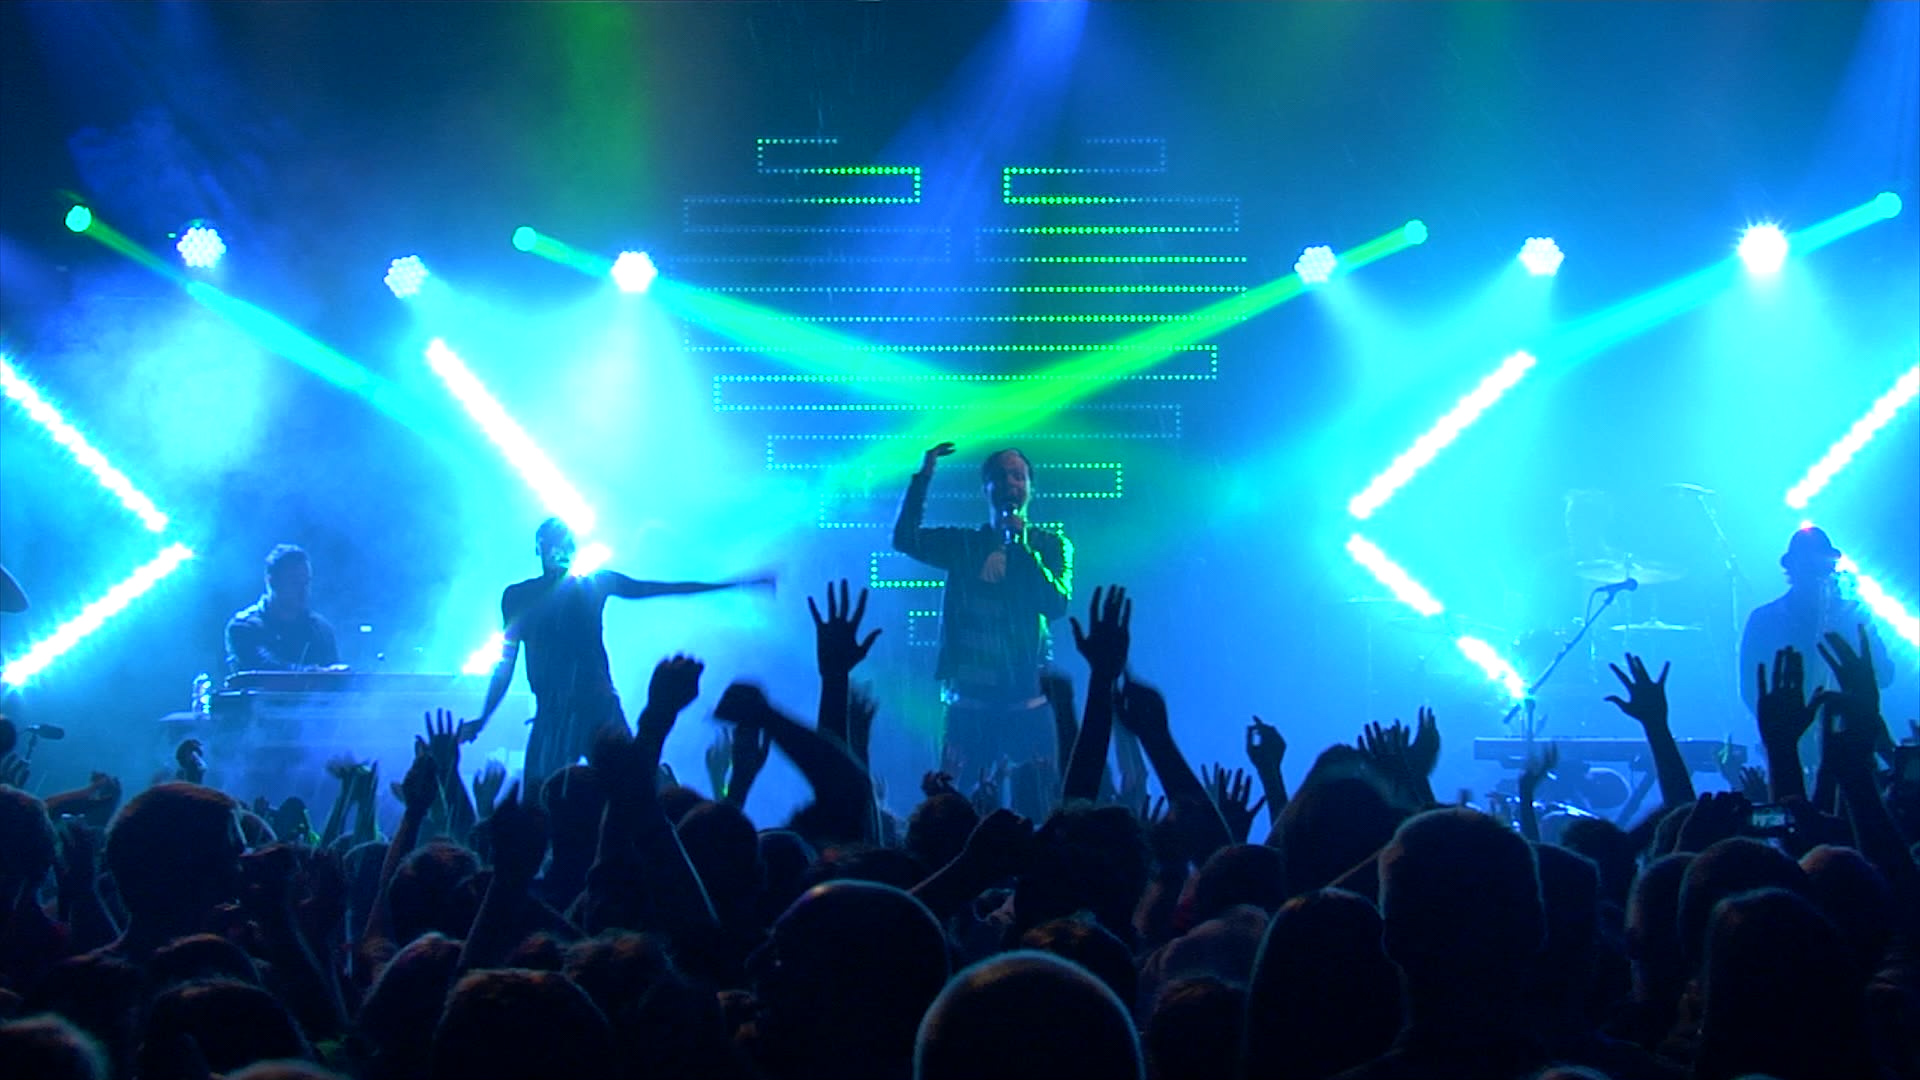 Cars.com Presents Fitz and the Tantrums - Multi-cam Edit